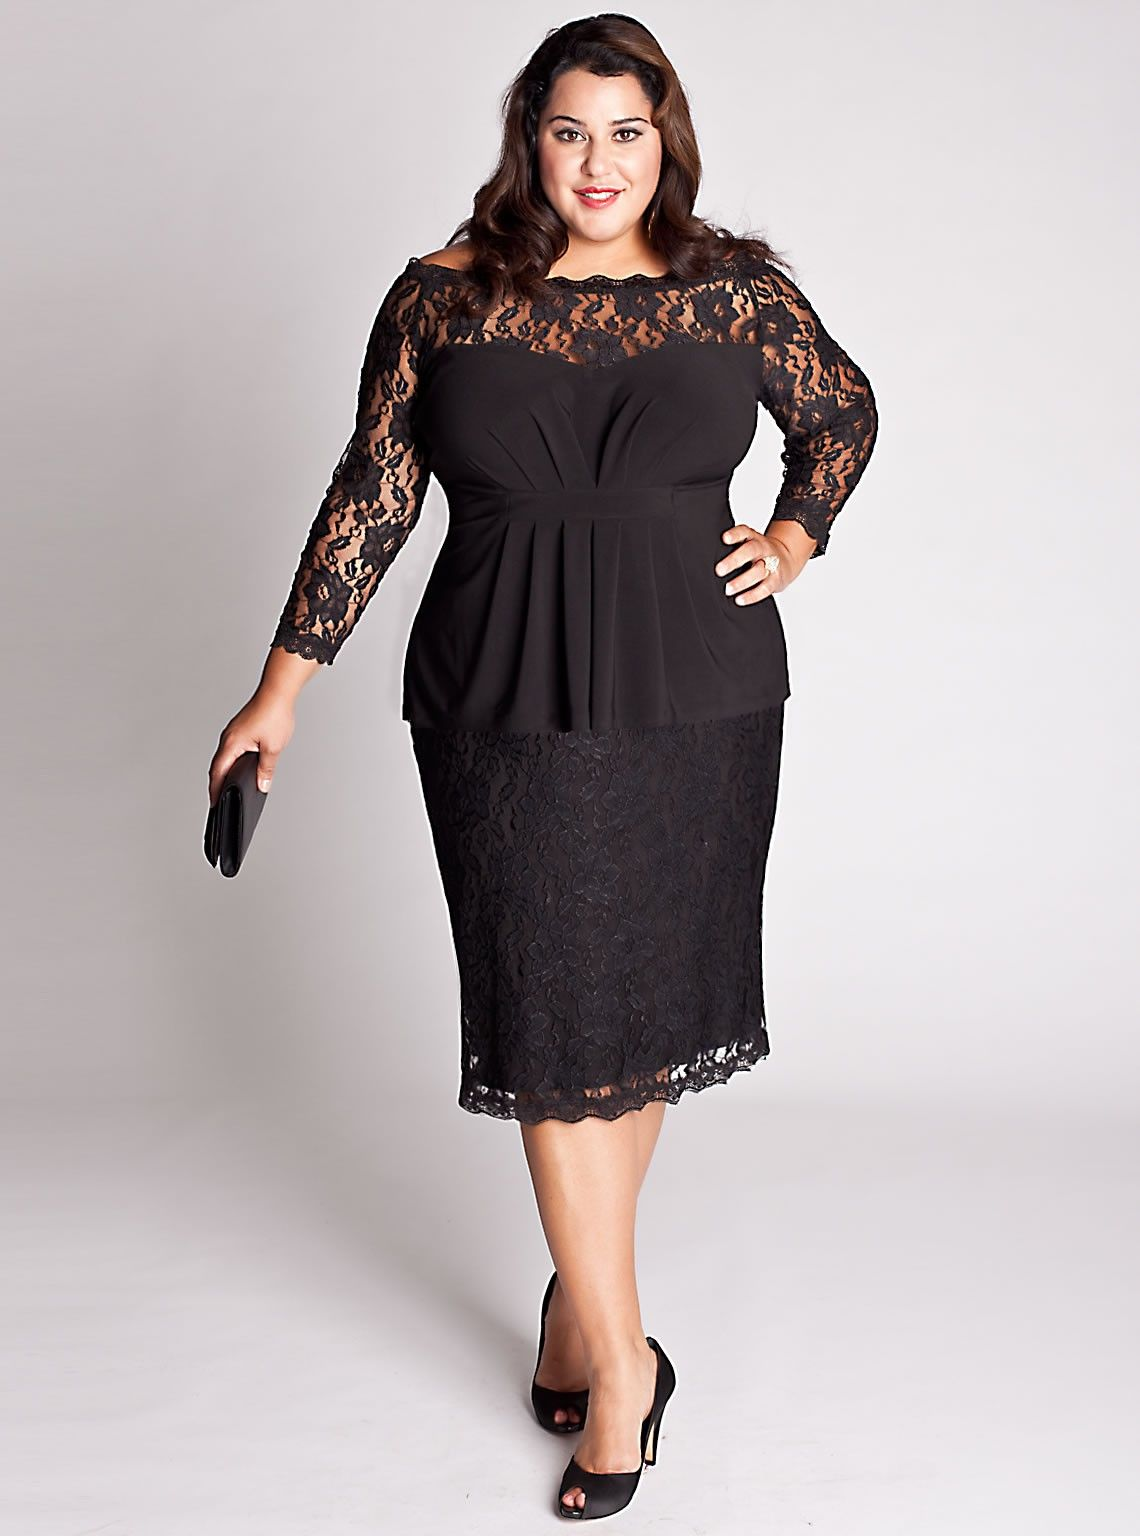 plus sized dress, lace overlay, i would go with an aline skirt but